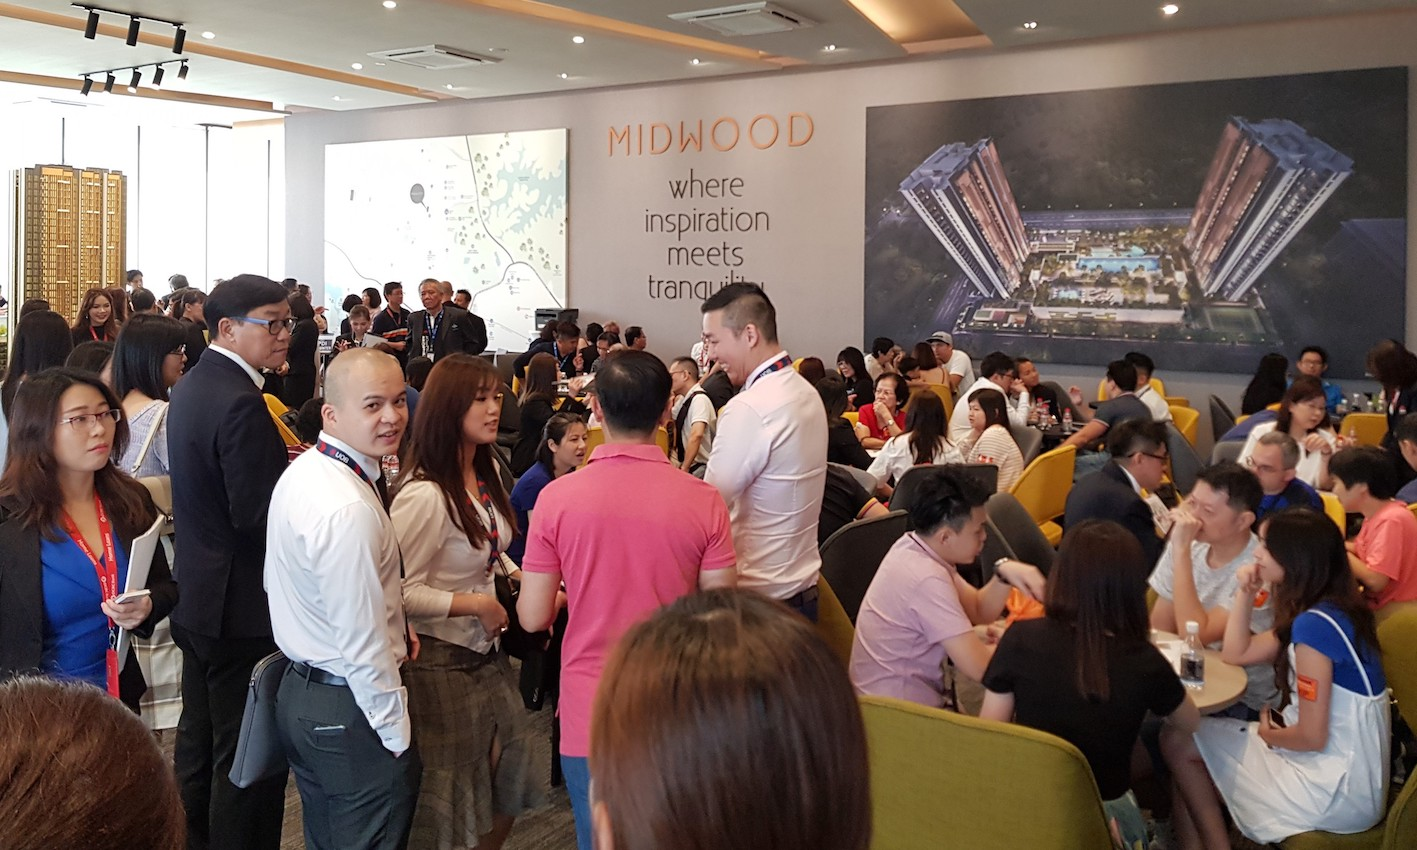 The crowd at Midwood on launch weekend (Photo: Hong Leong Holdings)